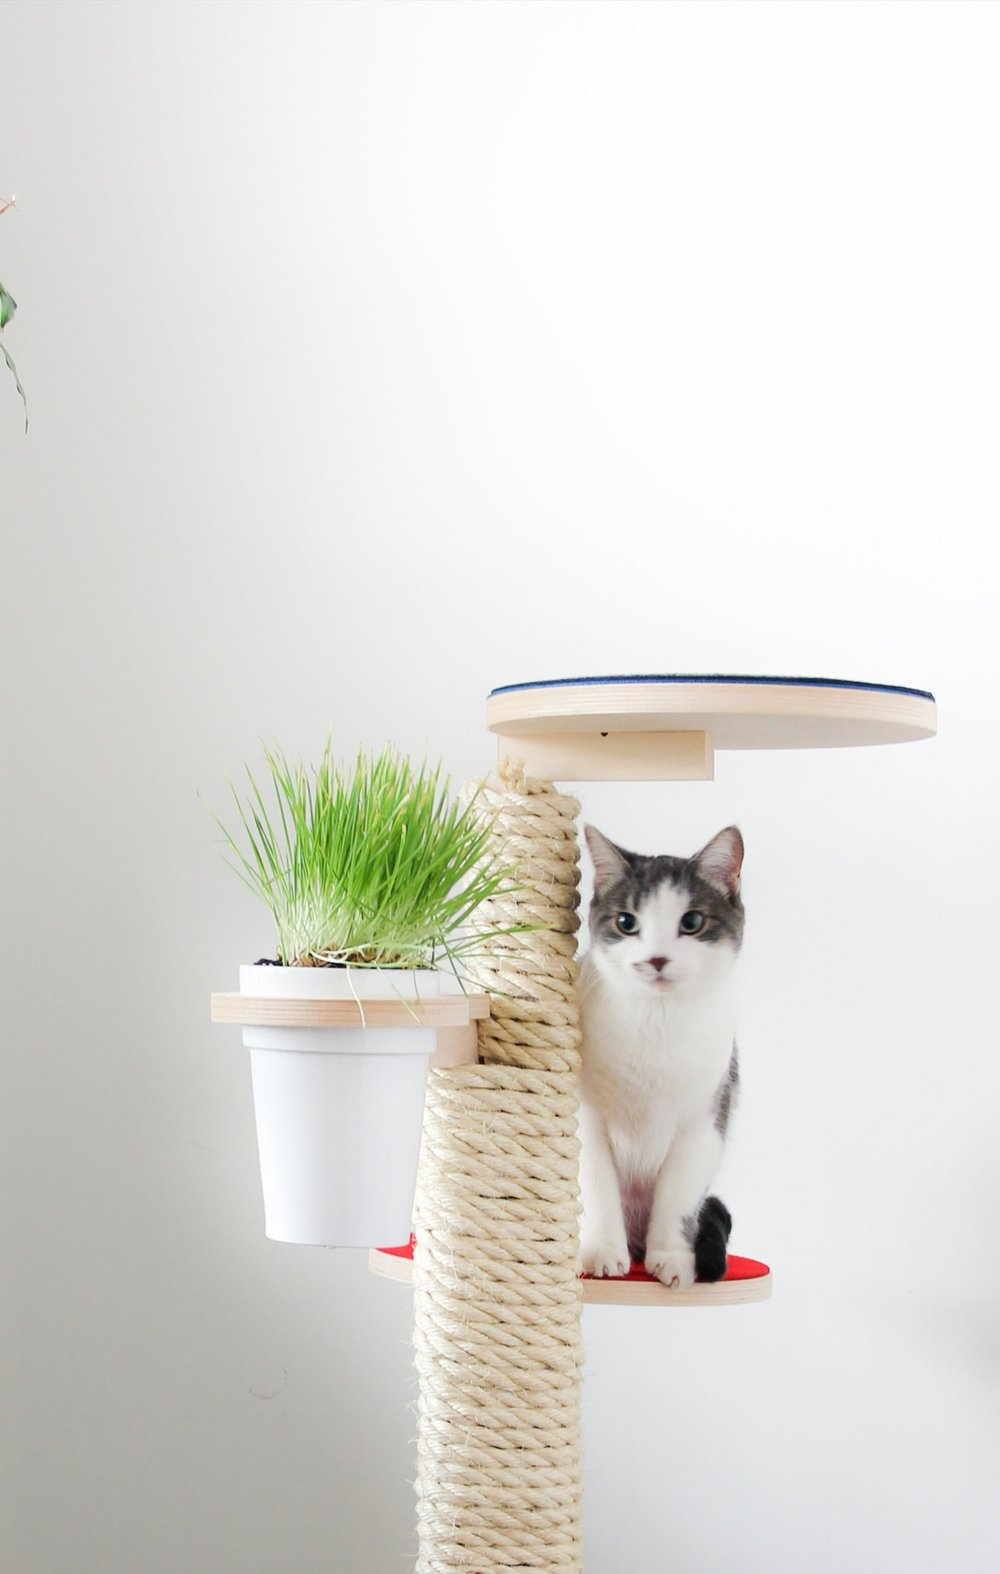 Cat grass holder - A Healthy snack for your cat! From $150 CAD. Shop Now!